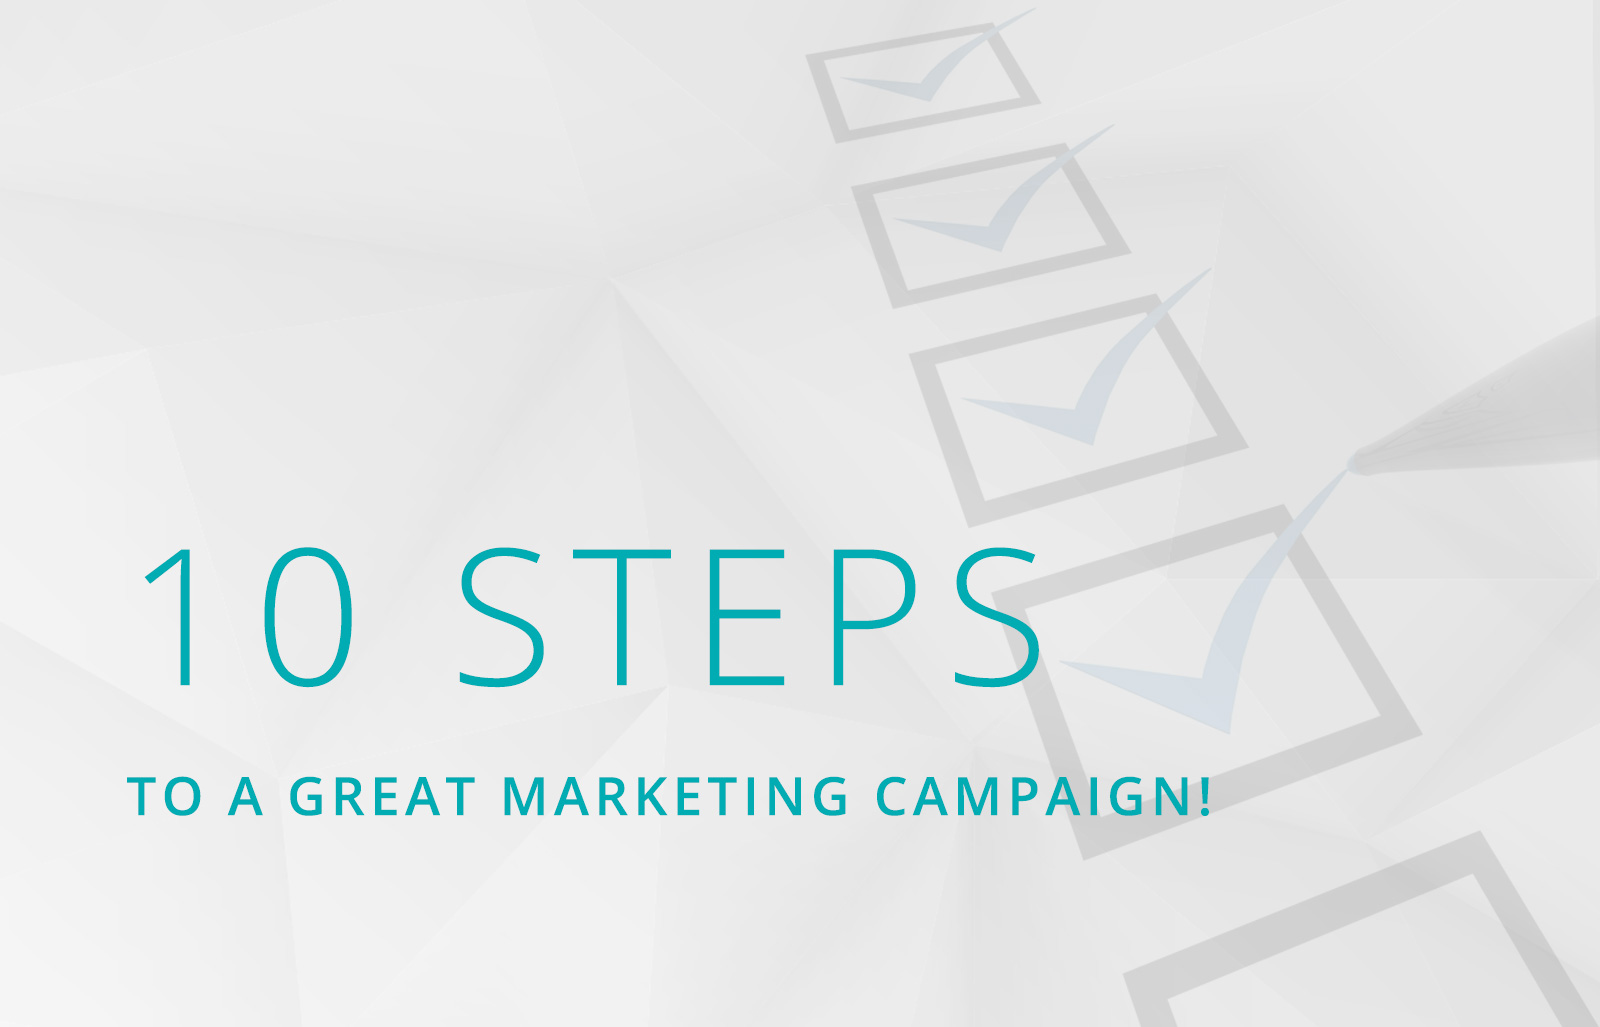 10 steps to a great marketing campaign!